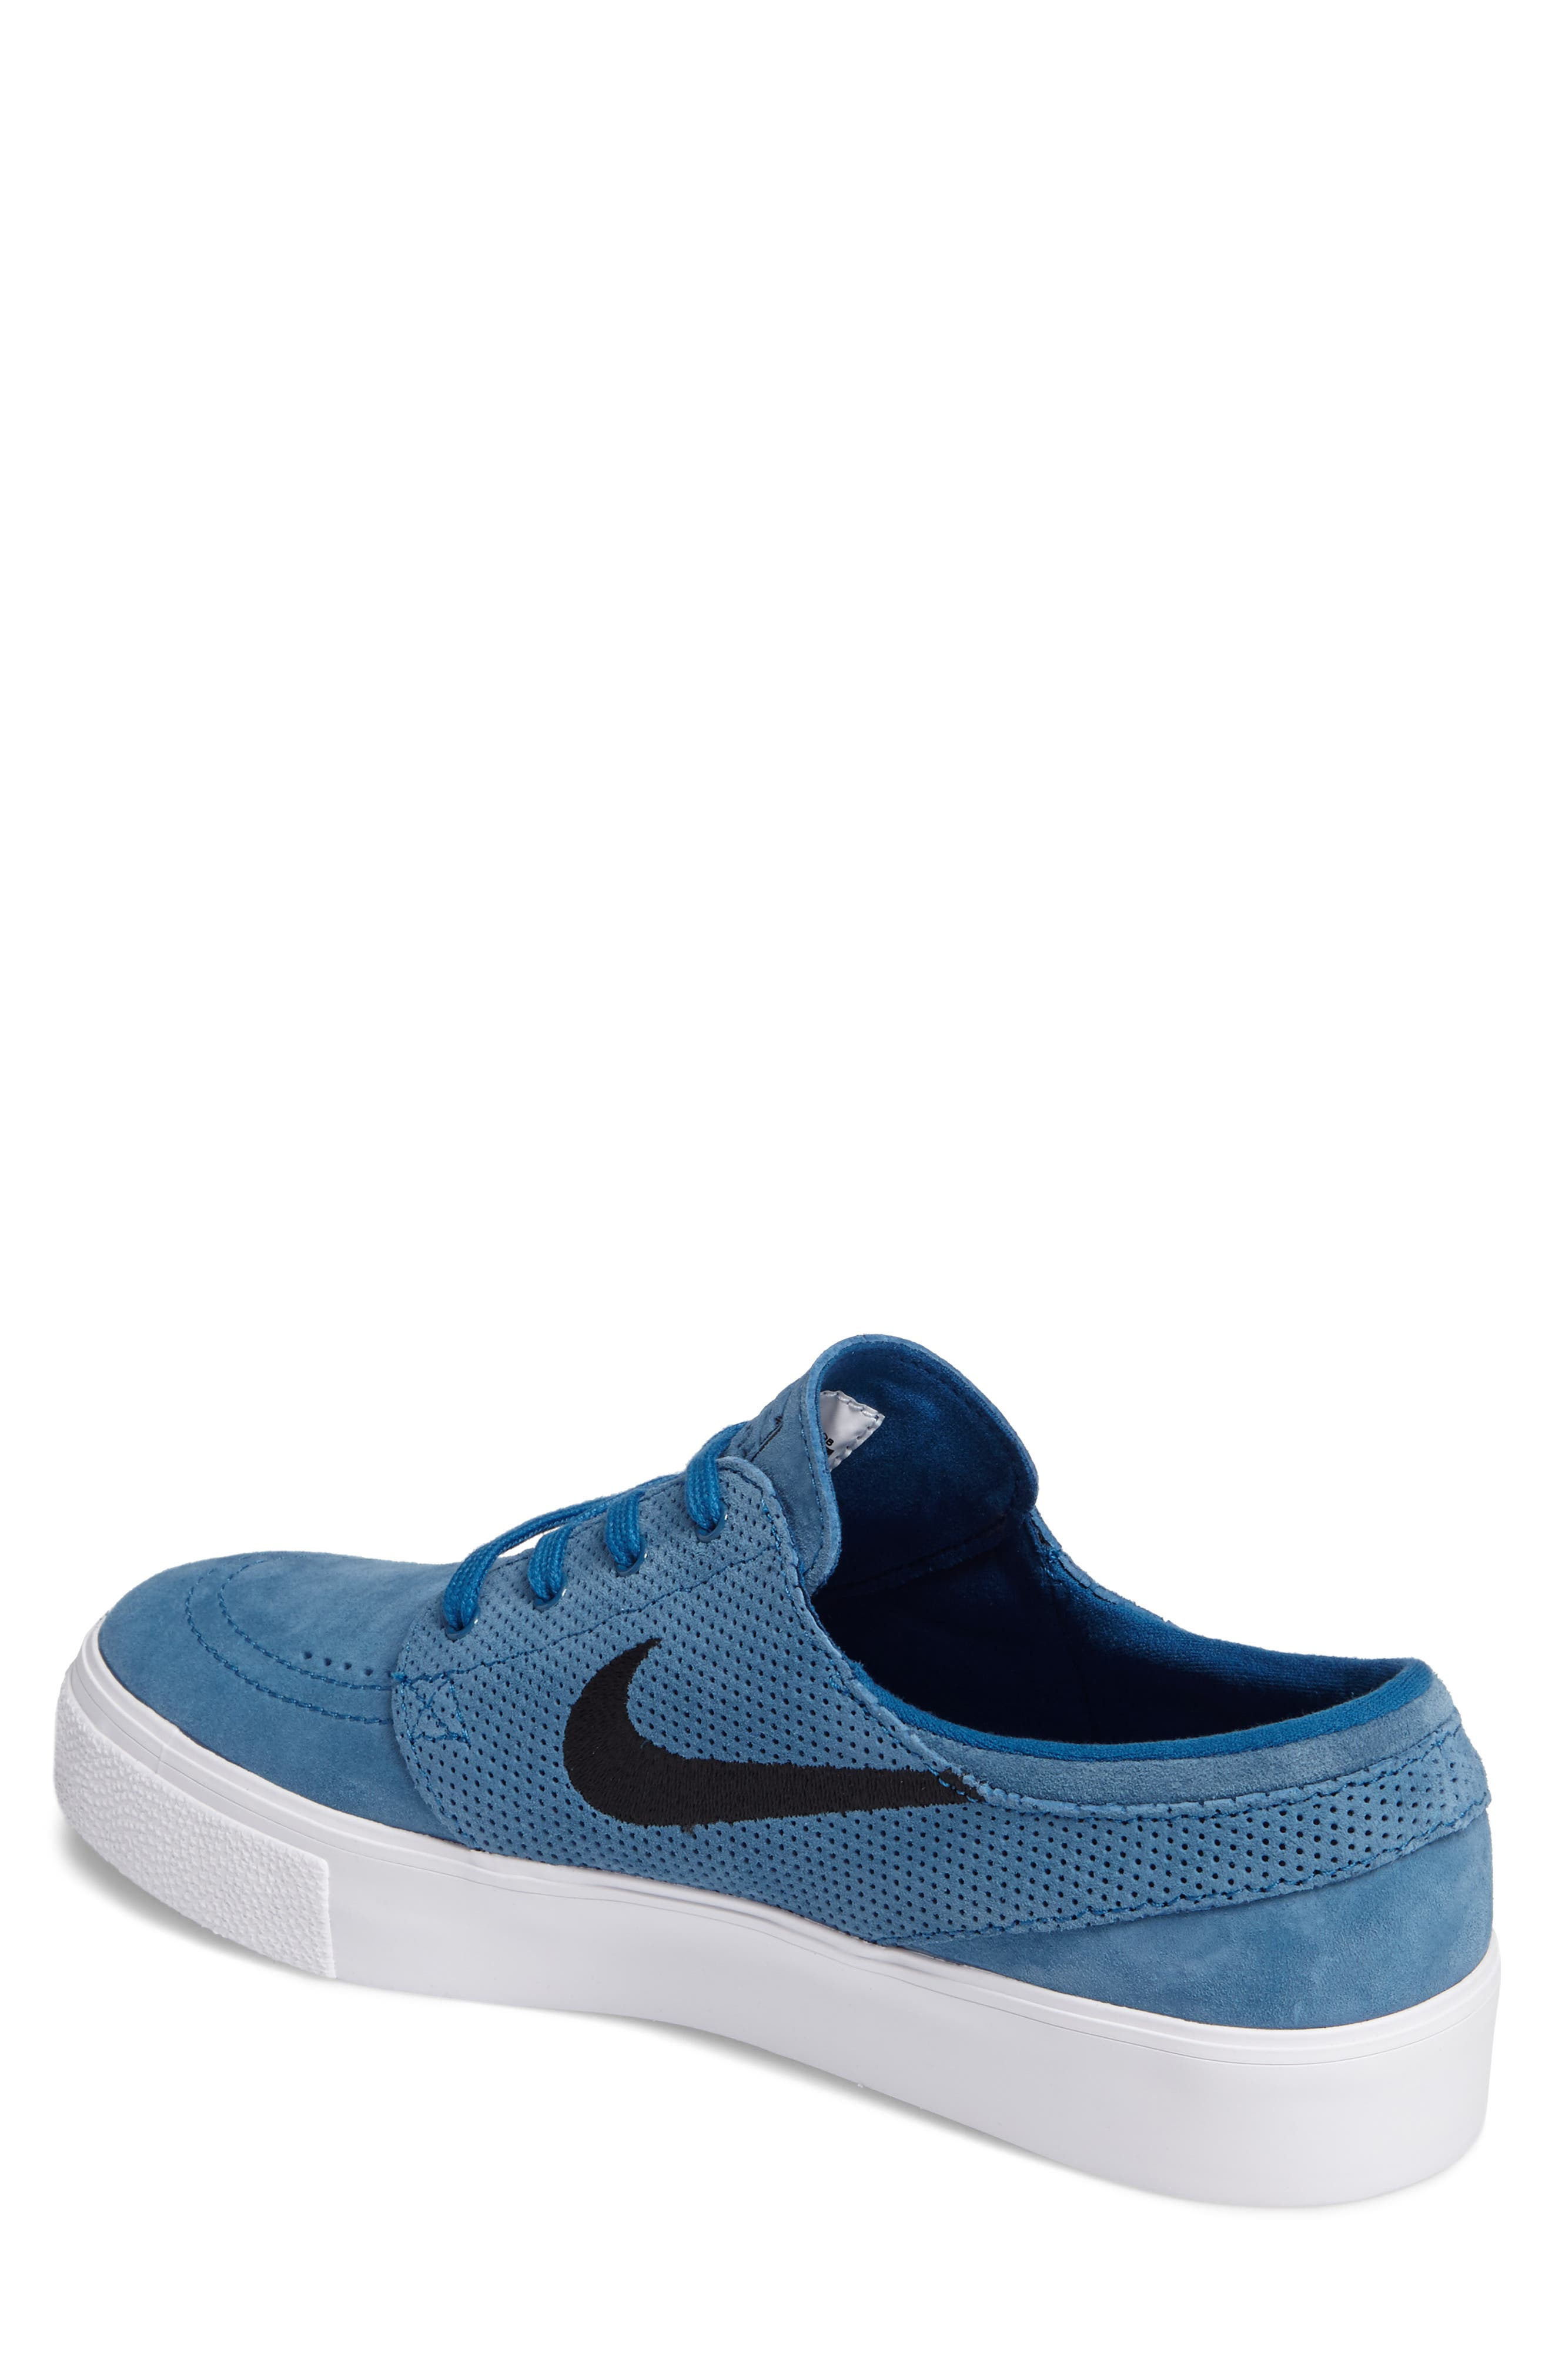 Zoom Stefan Janoski Premium Skate Sneaker,                             Alternate thumbnail 2, color,                             Industrial Blue/ Black